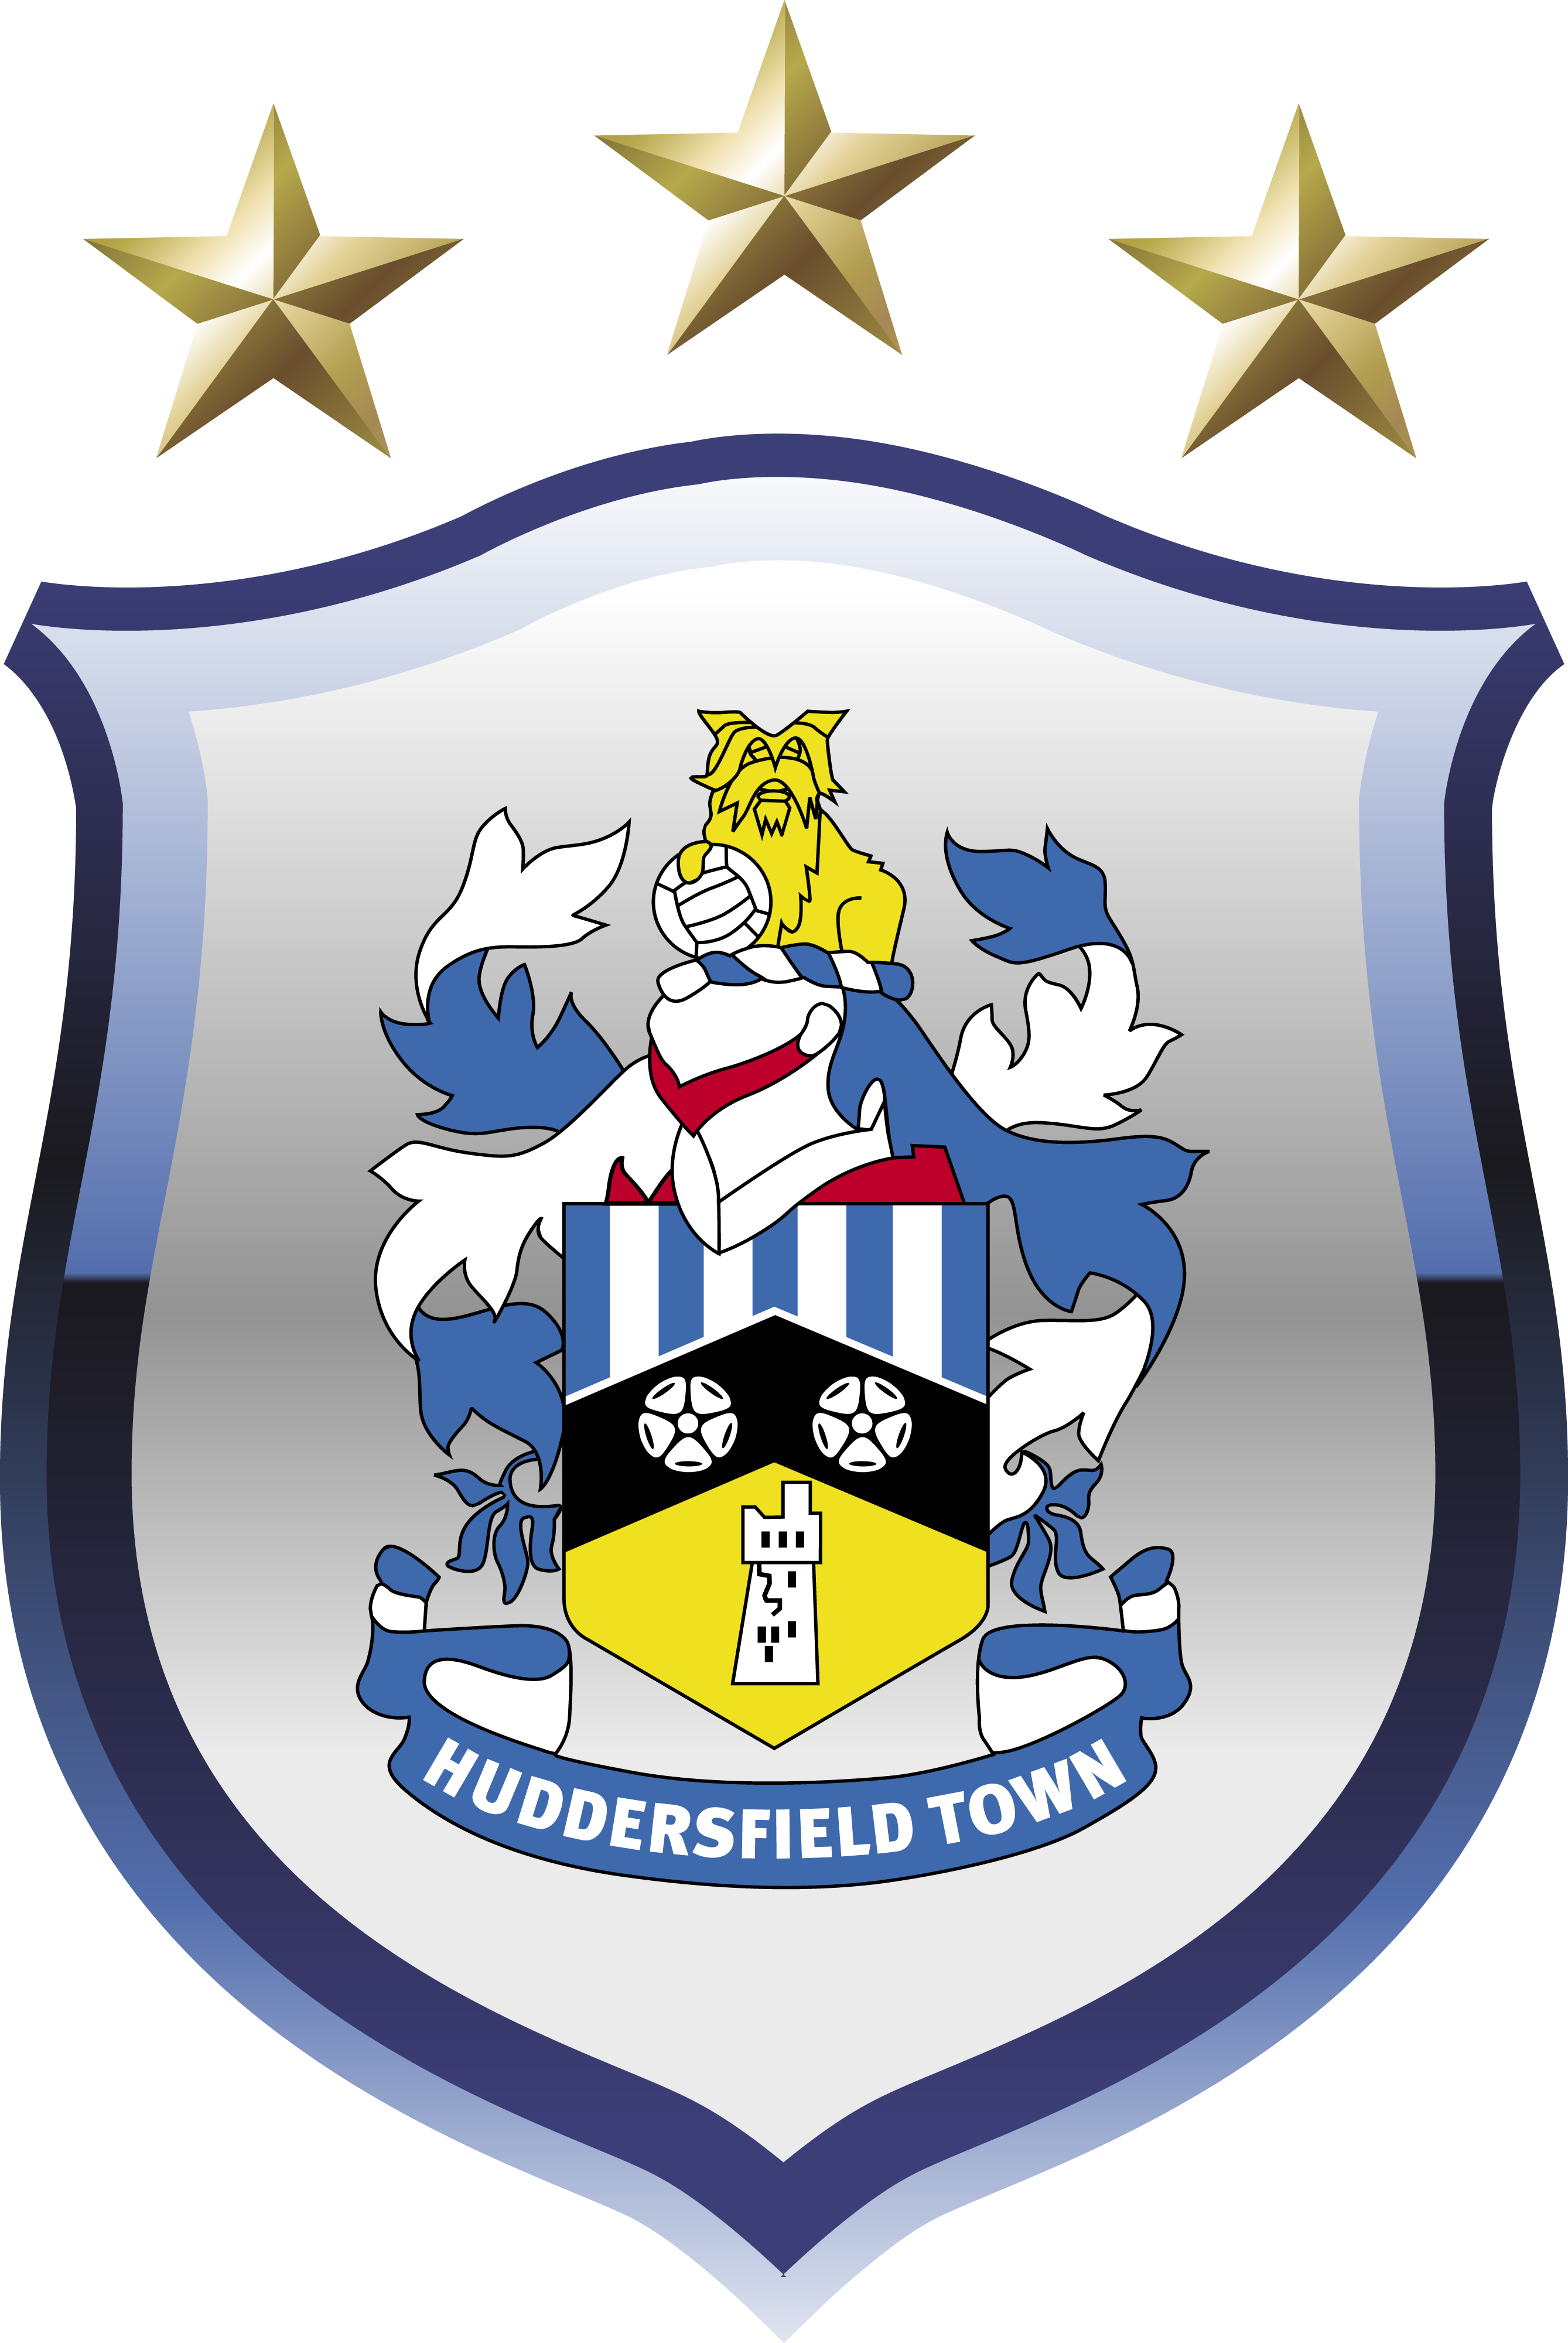 Huddersfield Man of the Match vote